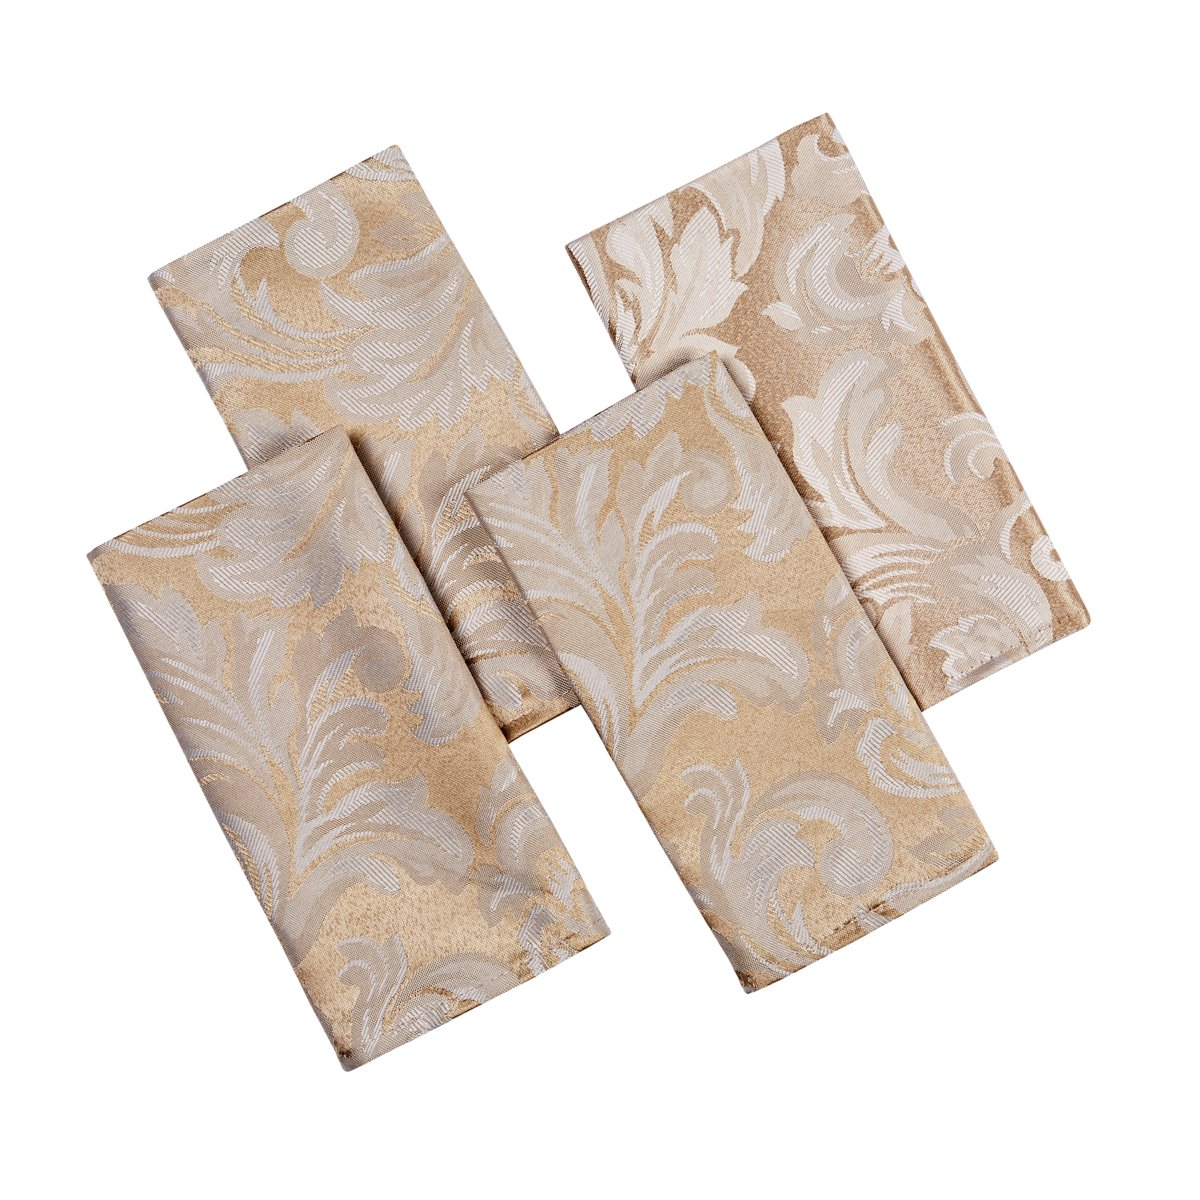 CHRISTMAS CADIZ DAMASK CHAMPAGNE(CREAMY/GOLD) PACK OF 4 NAPKINS 17IN X 17IN (43CM X 43CM) APPROX 4 Your Home